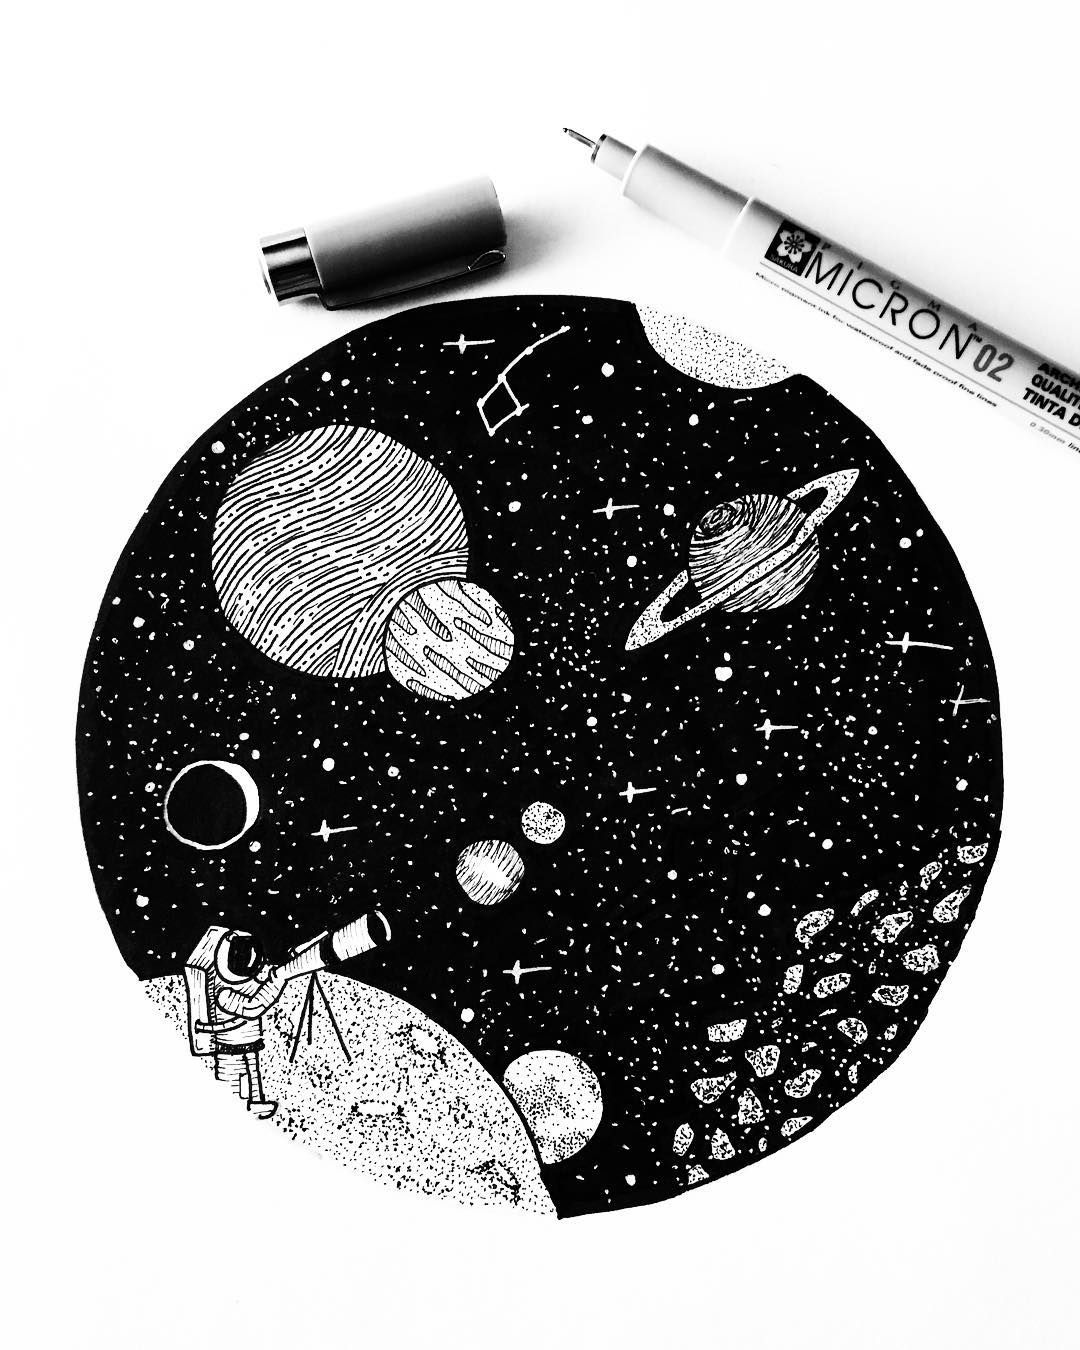 astronomy drawing tumblr - 736×888